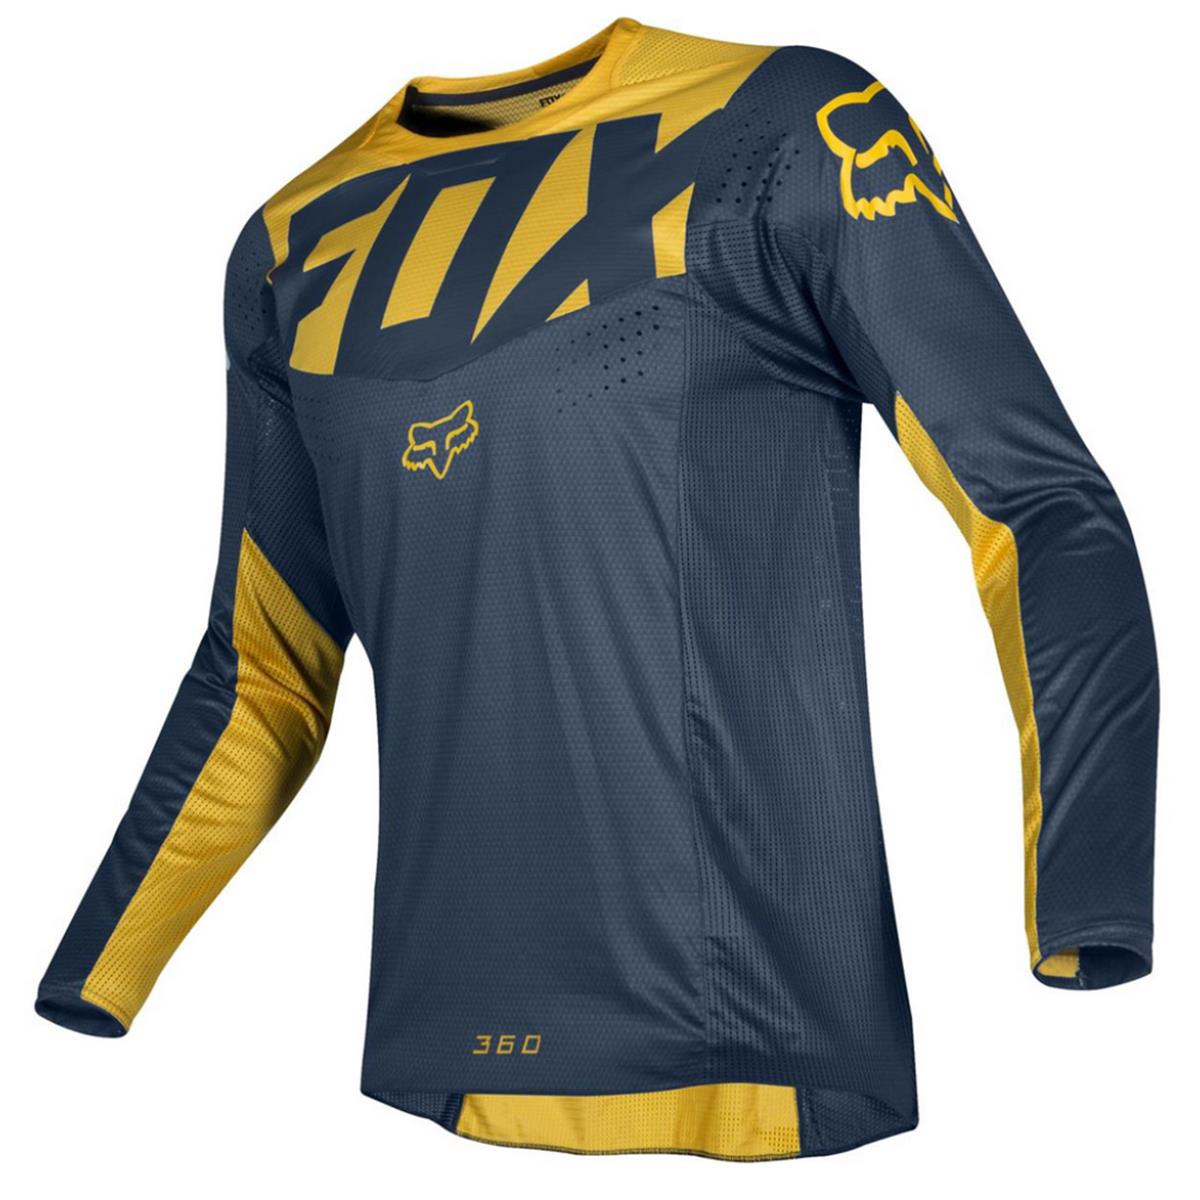 Fox Jersey 360 Kila Navy/Yellow